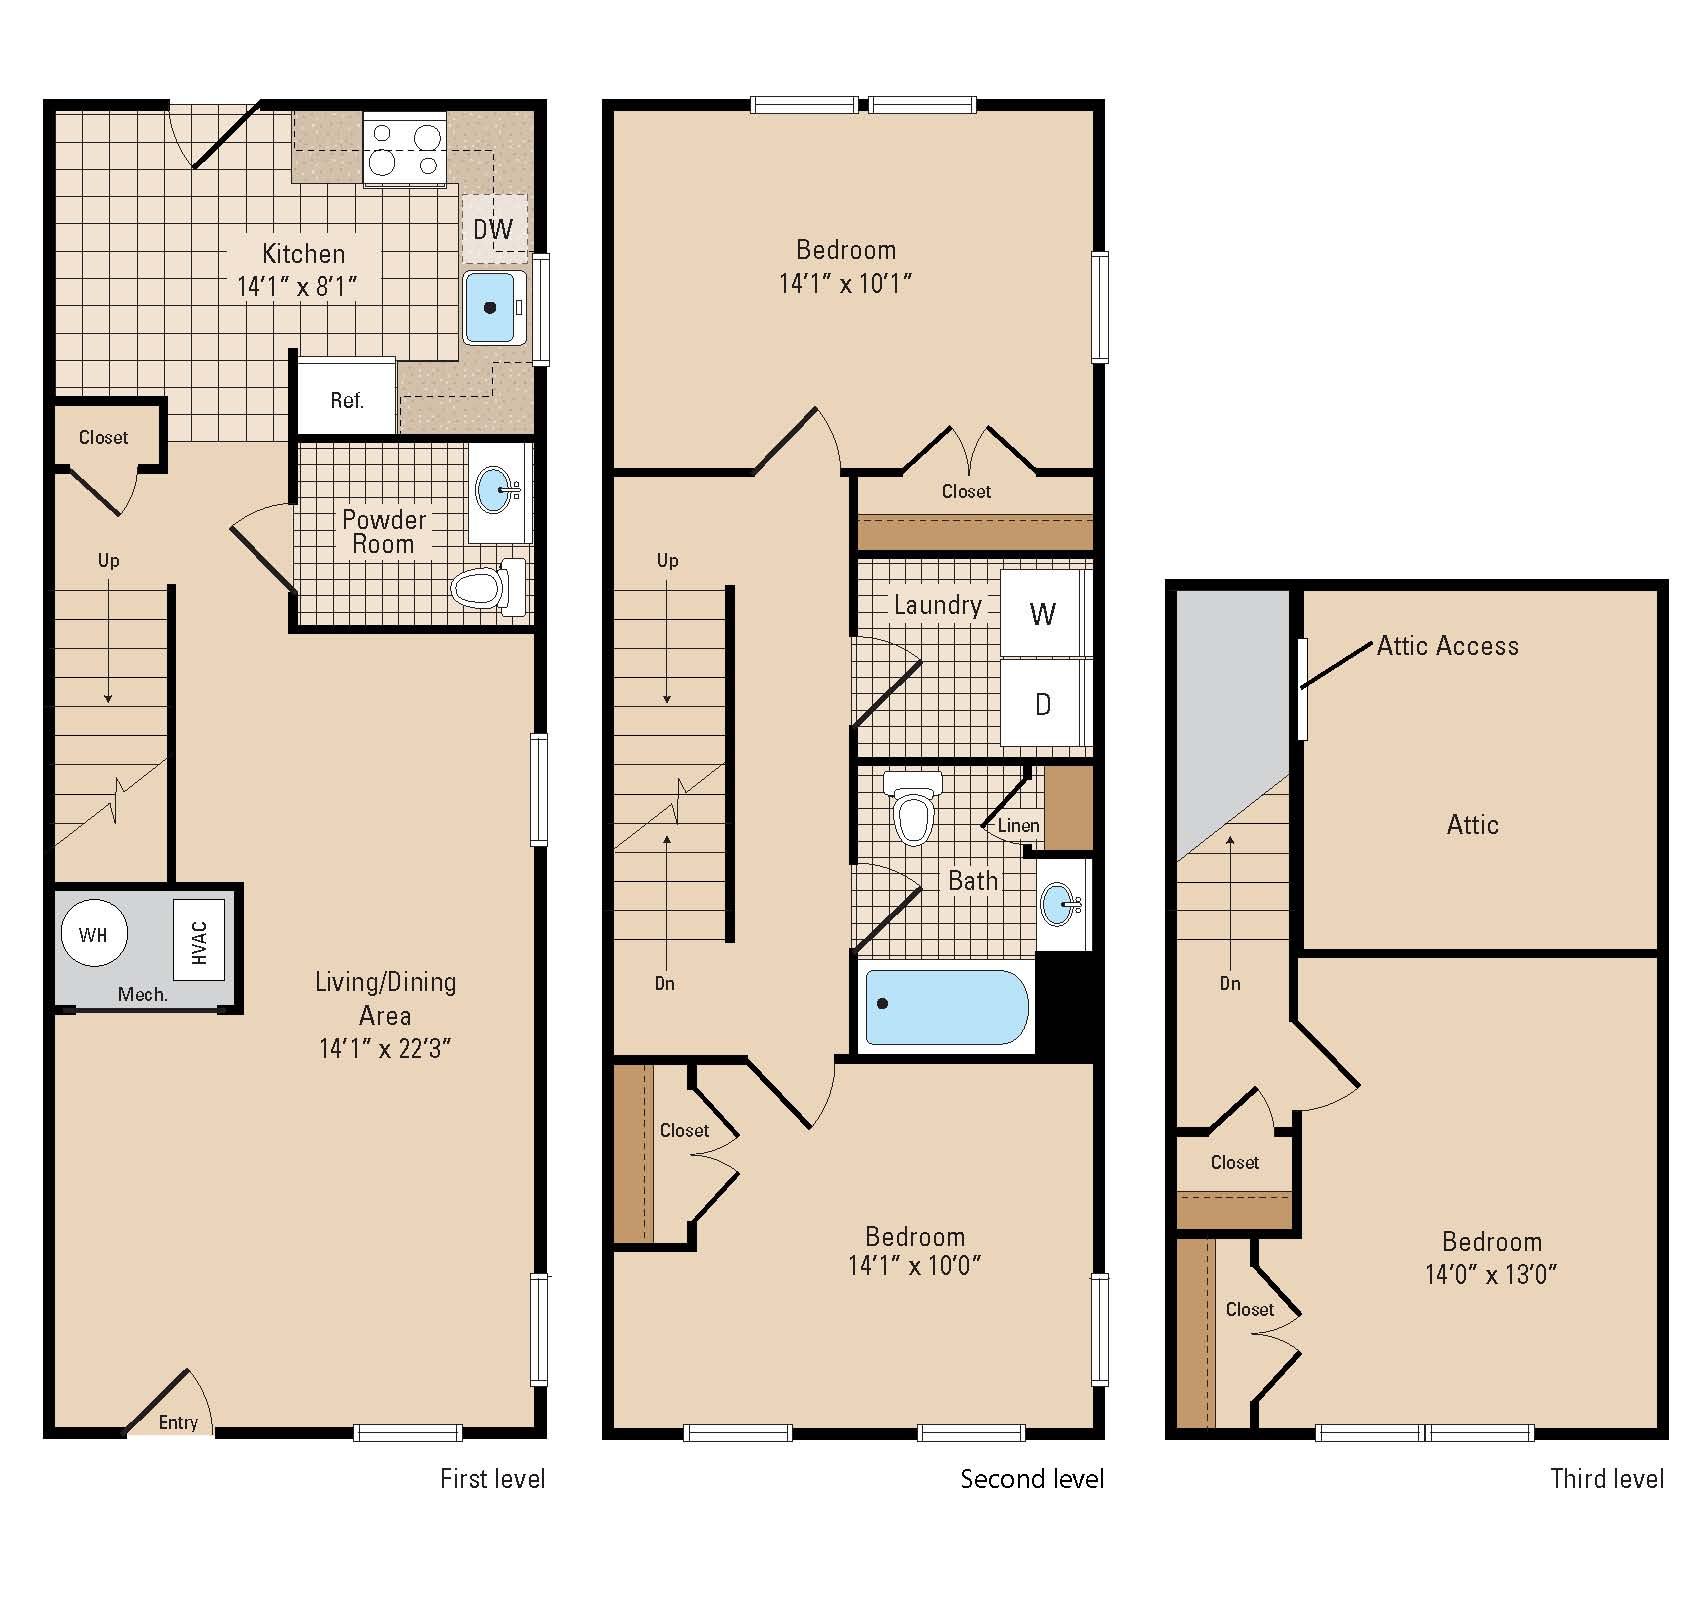 cloisters 3 3br townhome.jpg (1)